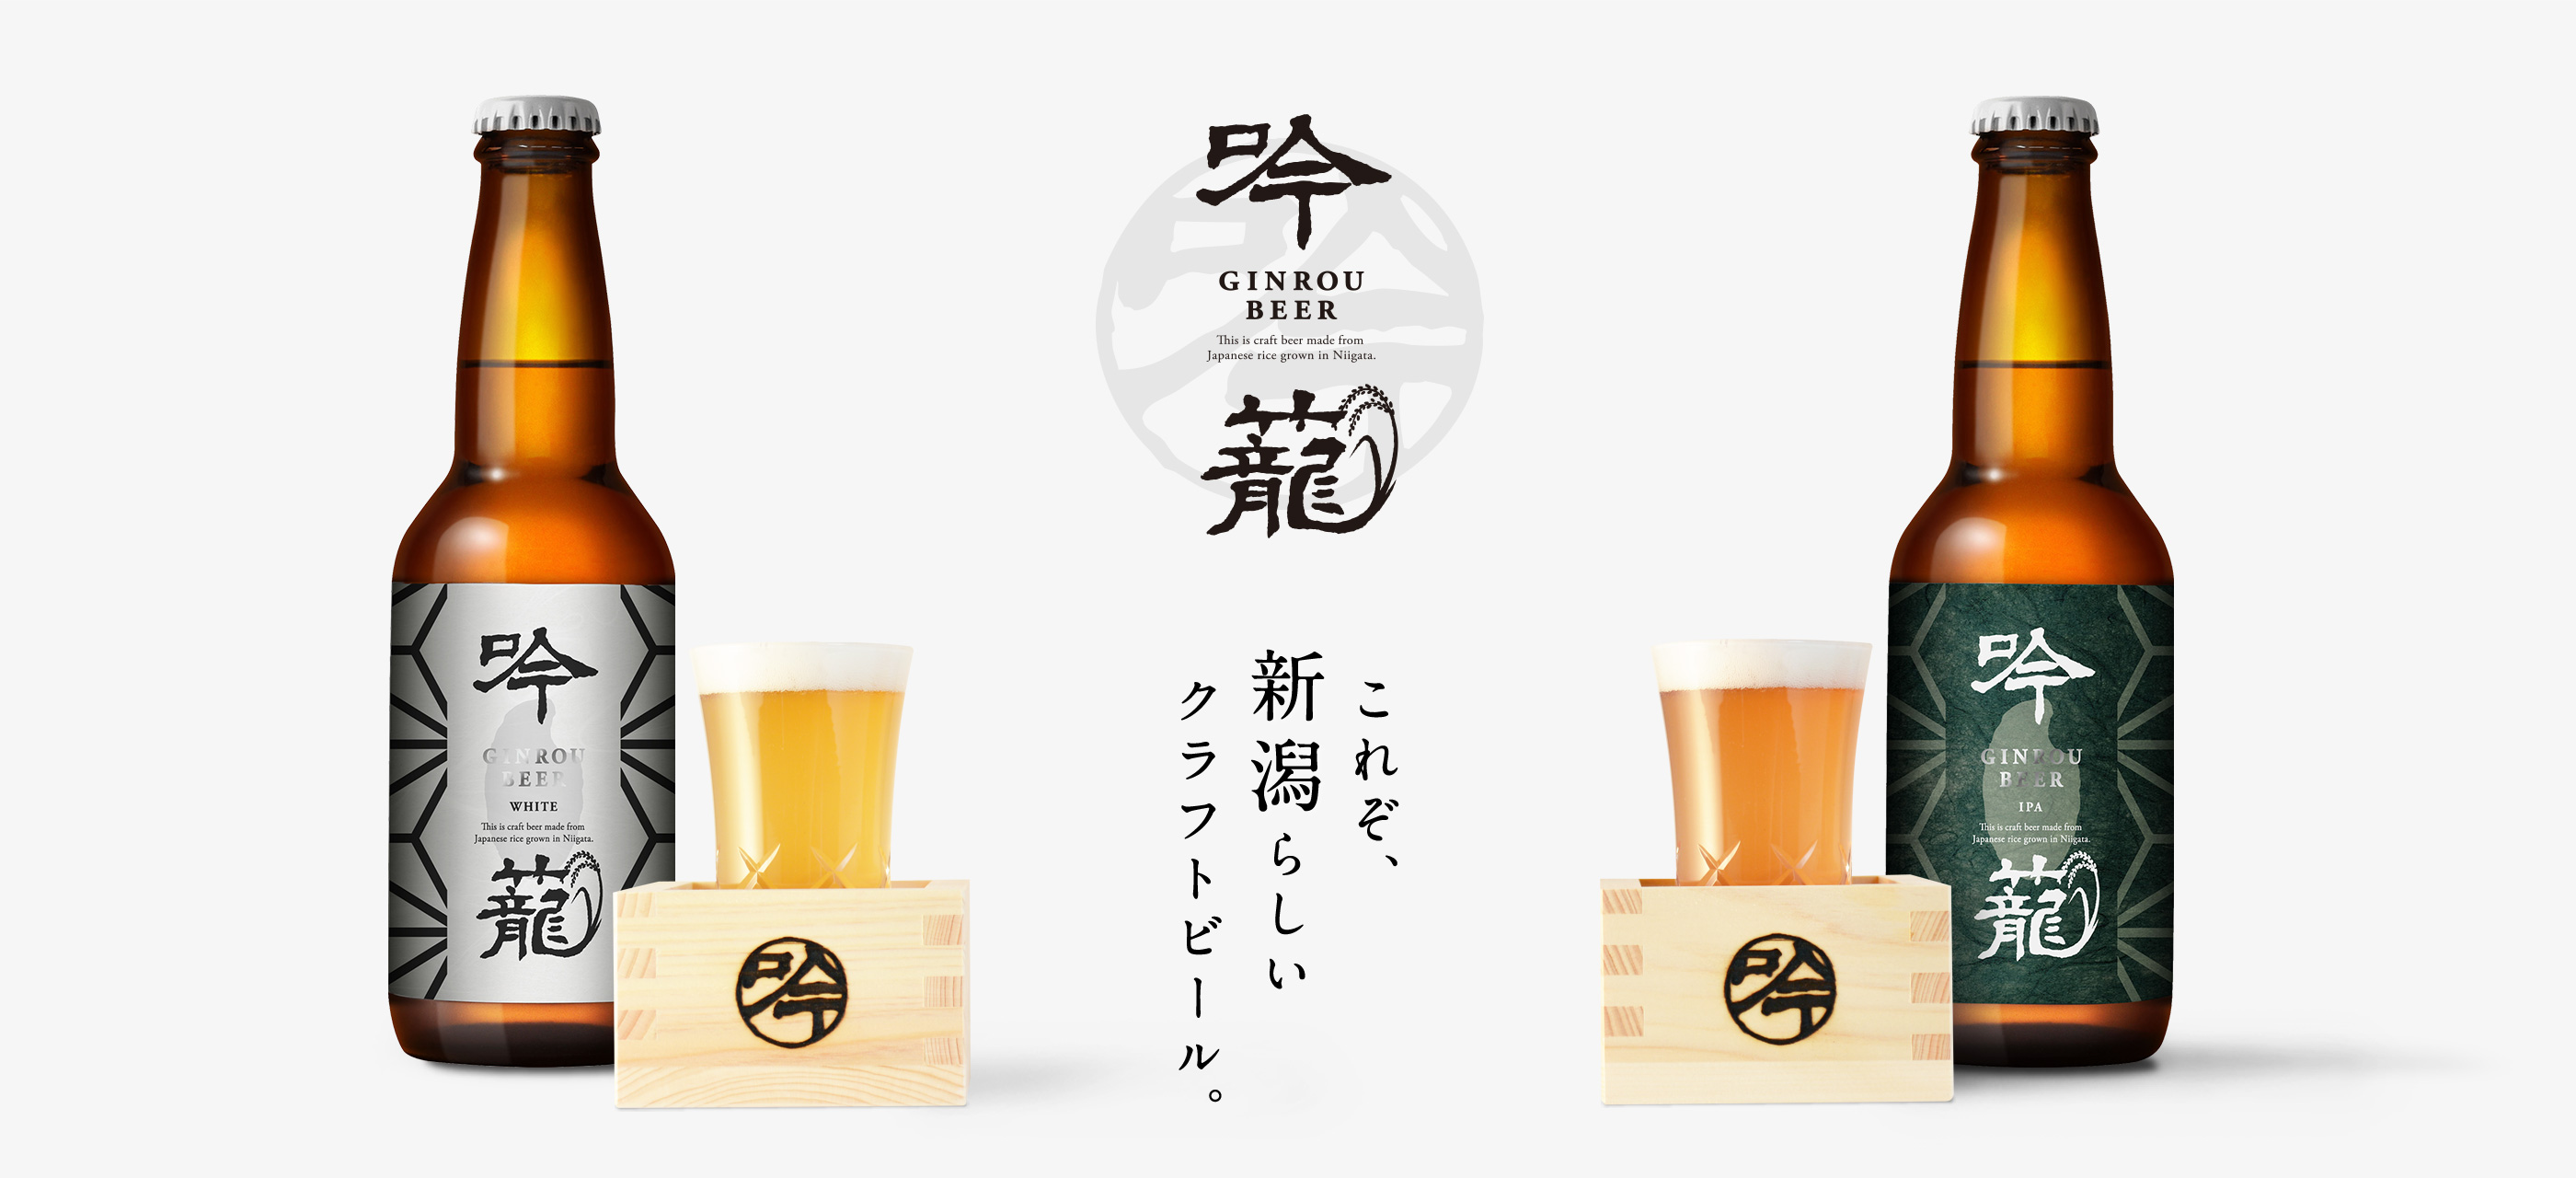 これぞ新潟らしいクラフトビール This is craft beer made from Japanese rice grown in Niigata.